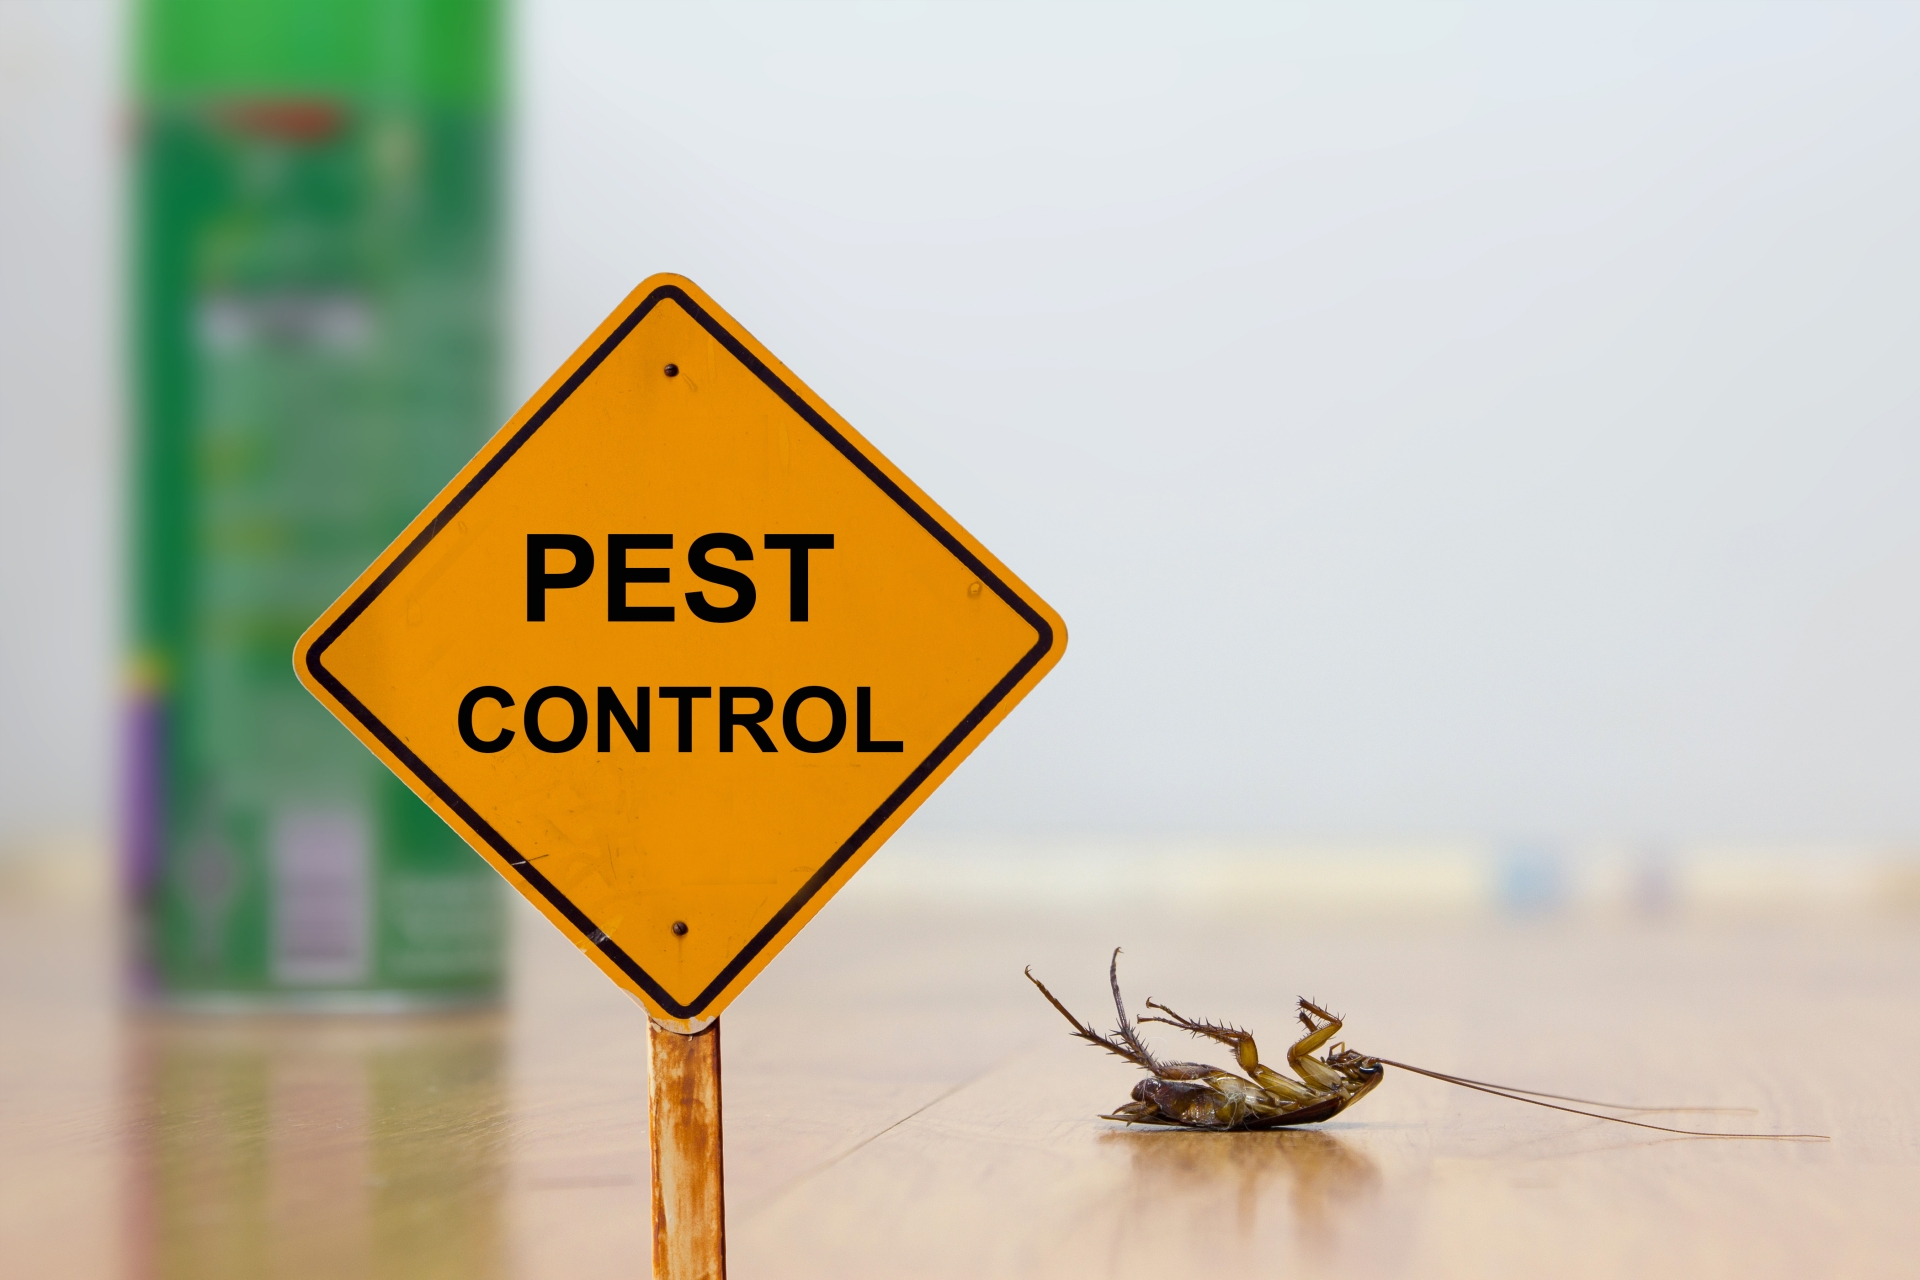 24 Hour Pest Control, Pest Control in Archway, N19. Call Now 020 8166 9746